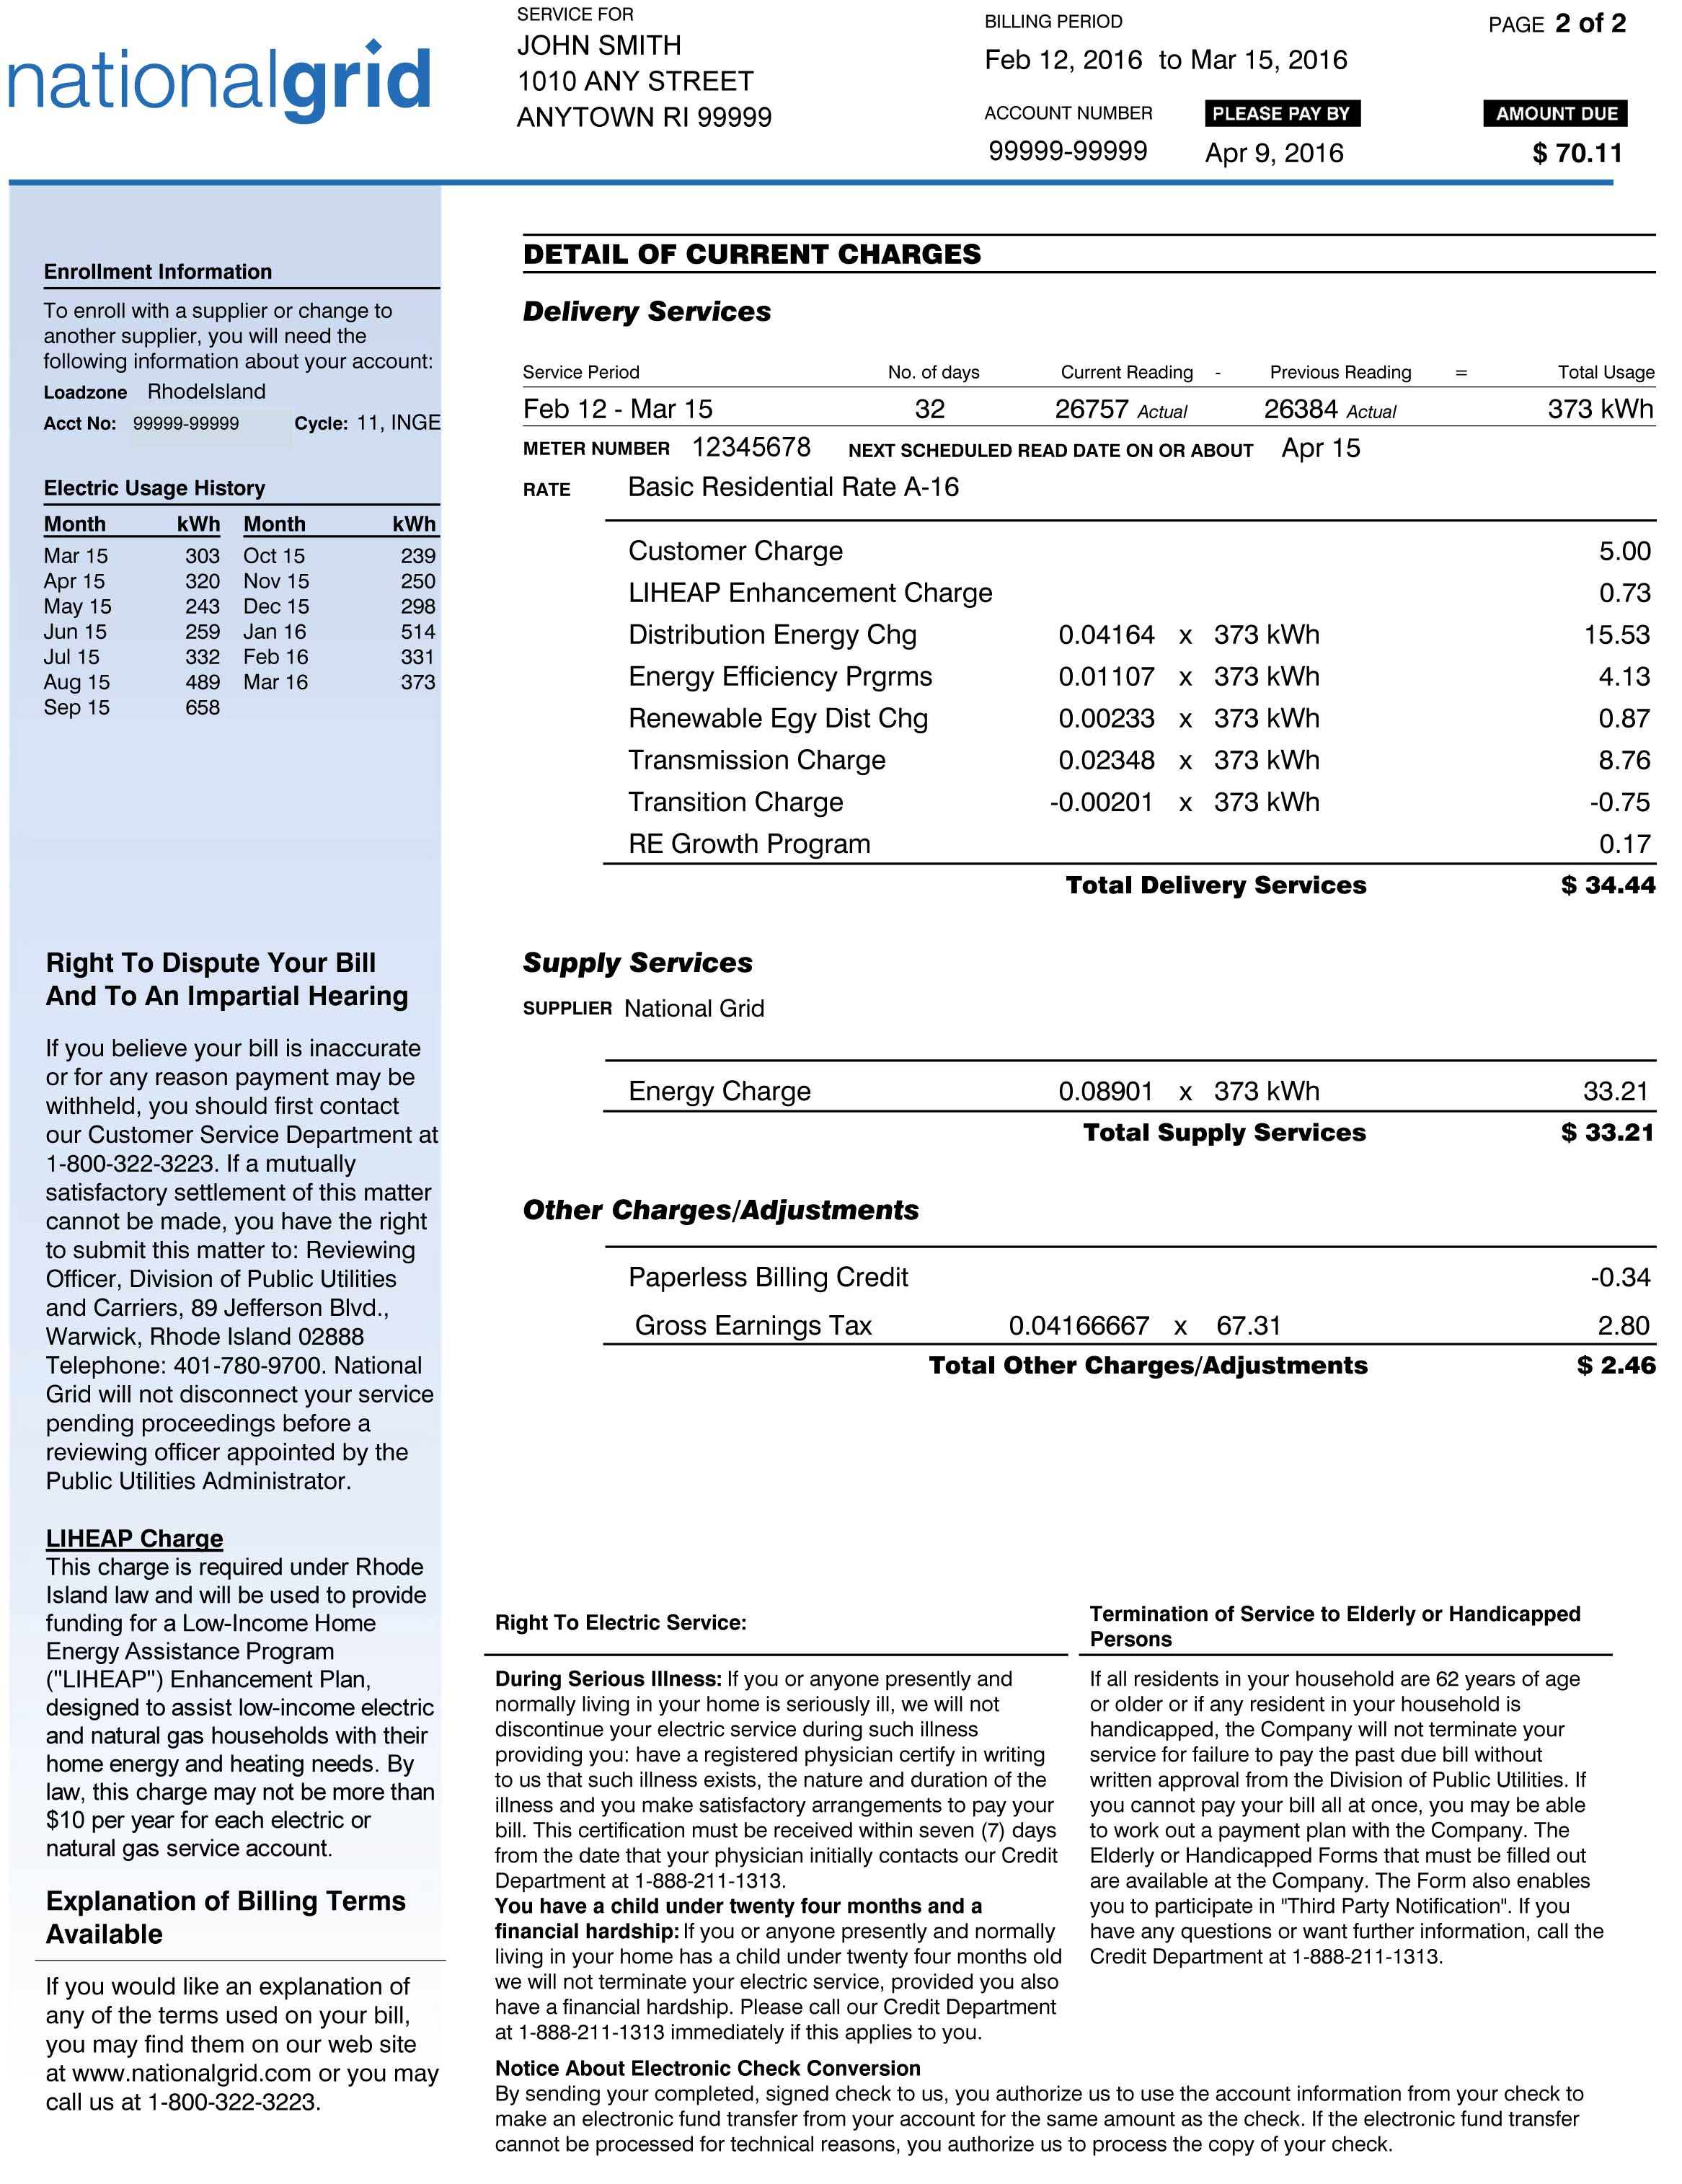 National Grid Natural Gas Bill Pay